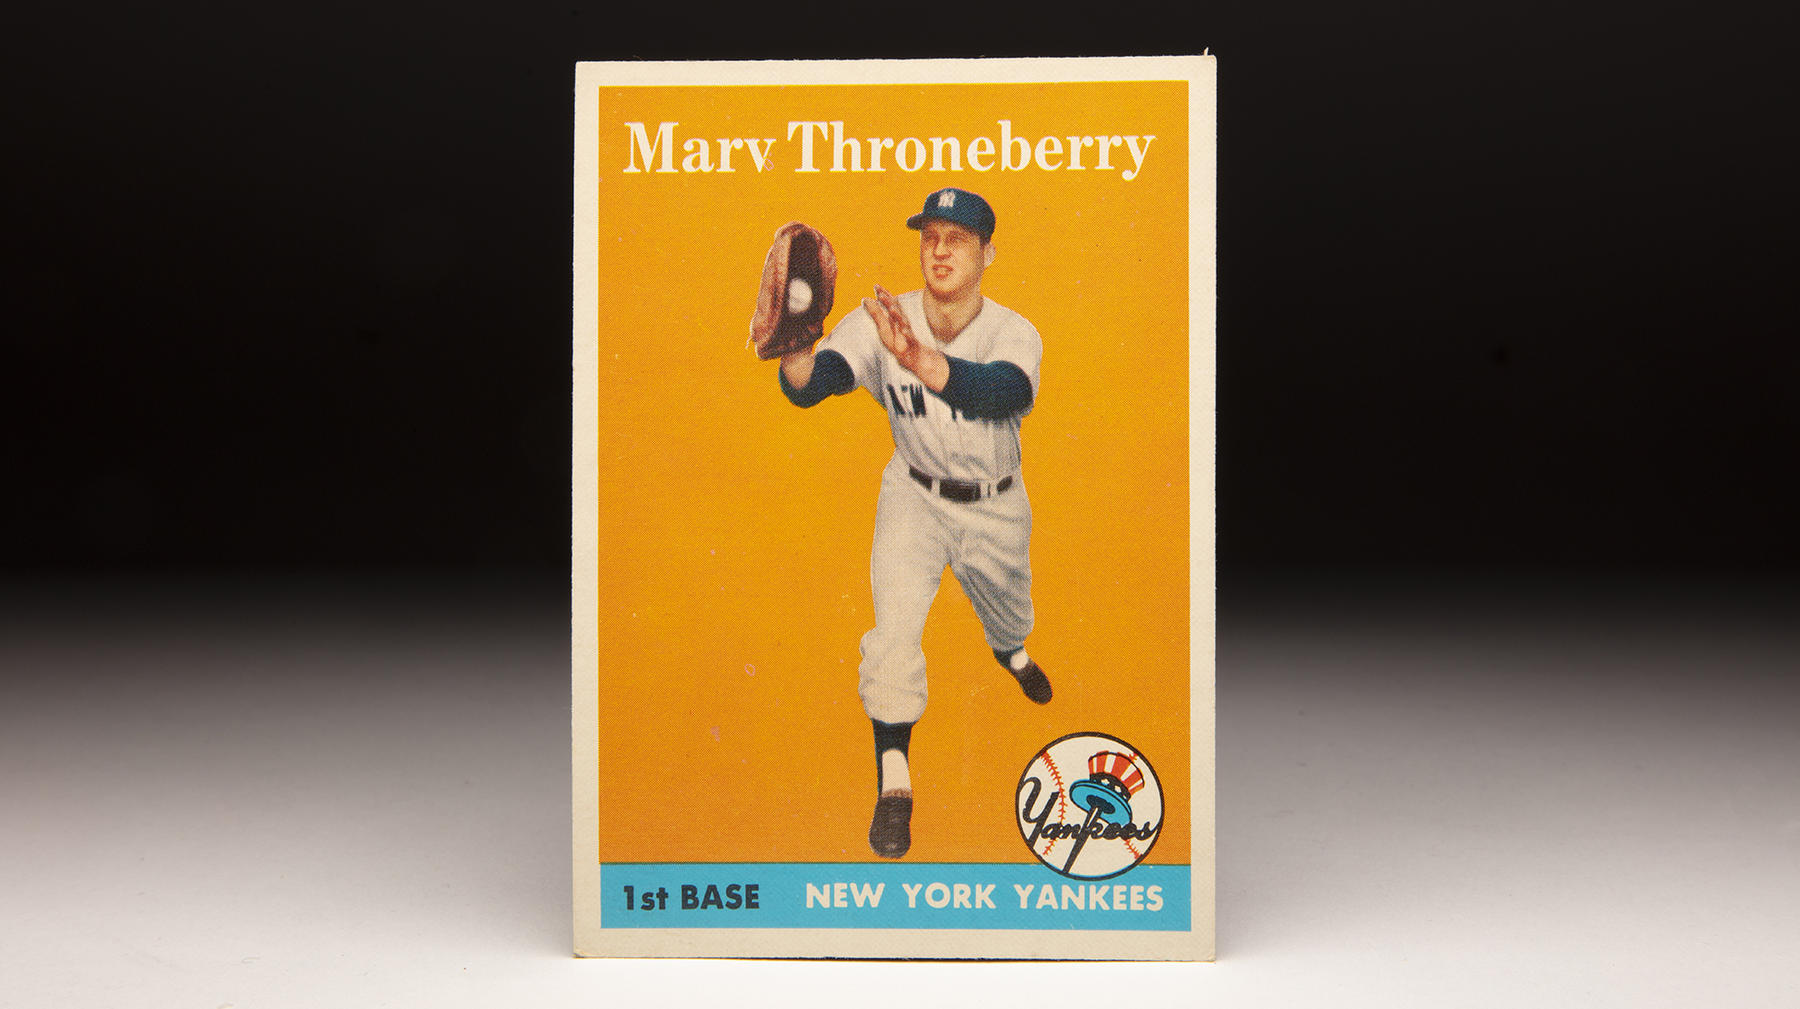 Marv Throneberry played in seven big league seasons with the Yankees, Athletics, Orioles and Mets, primarily as a first baseman. His 1958 Topps card depicts him as a member of the Yankees. (Milo Stewart Jr./National Baseball Hall of Fame and Museum)